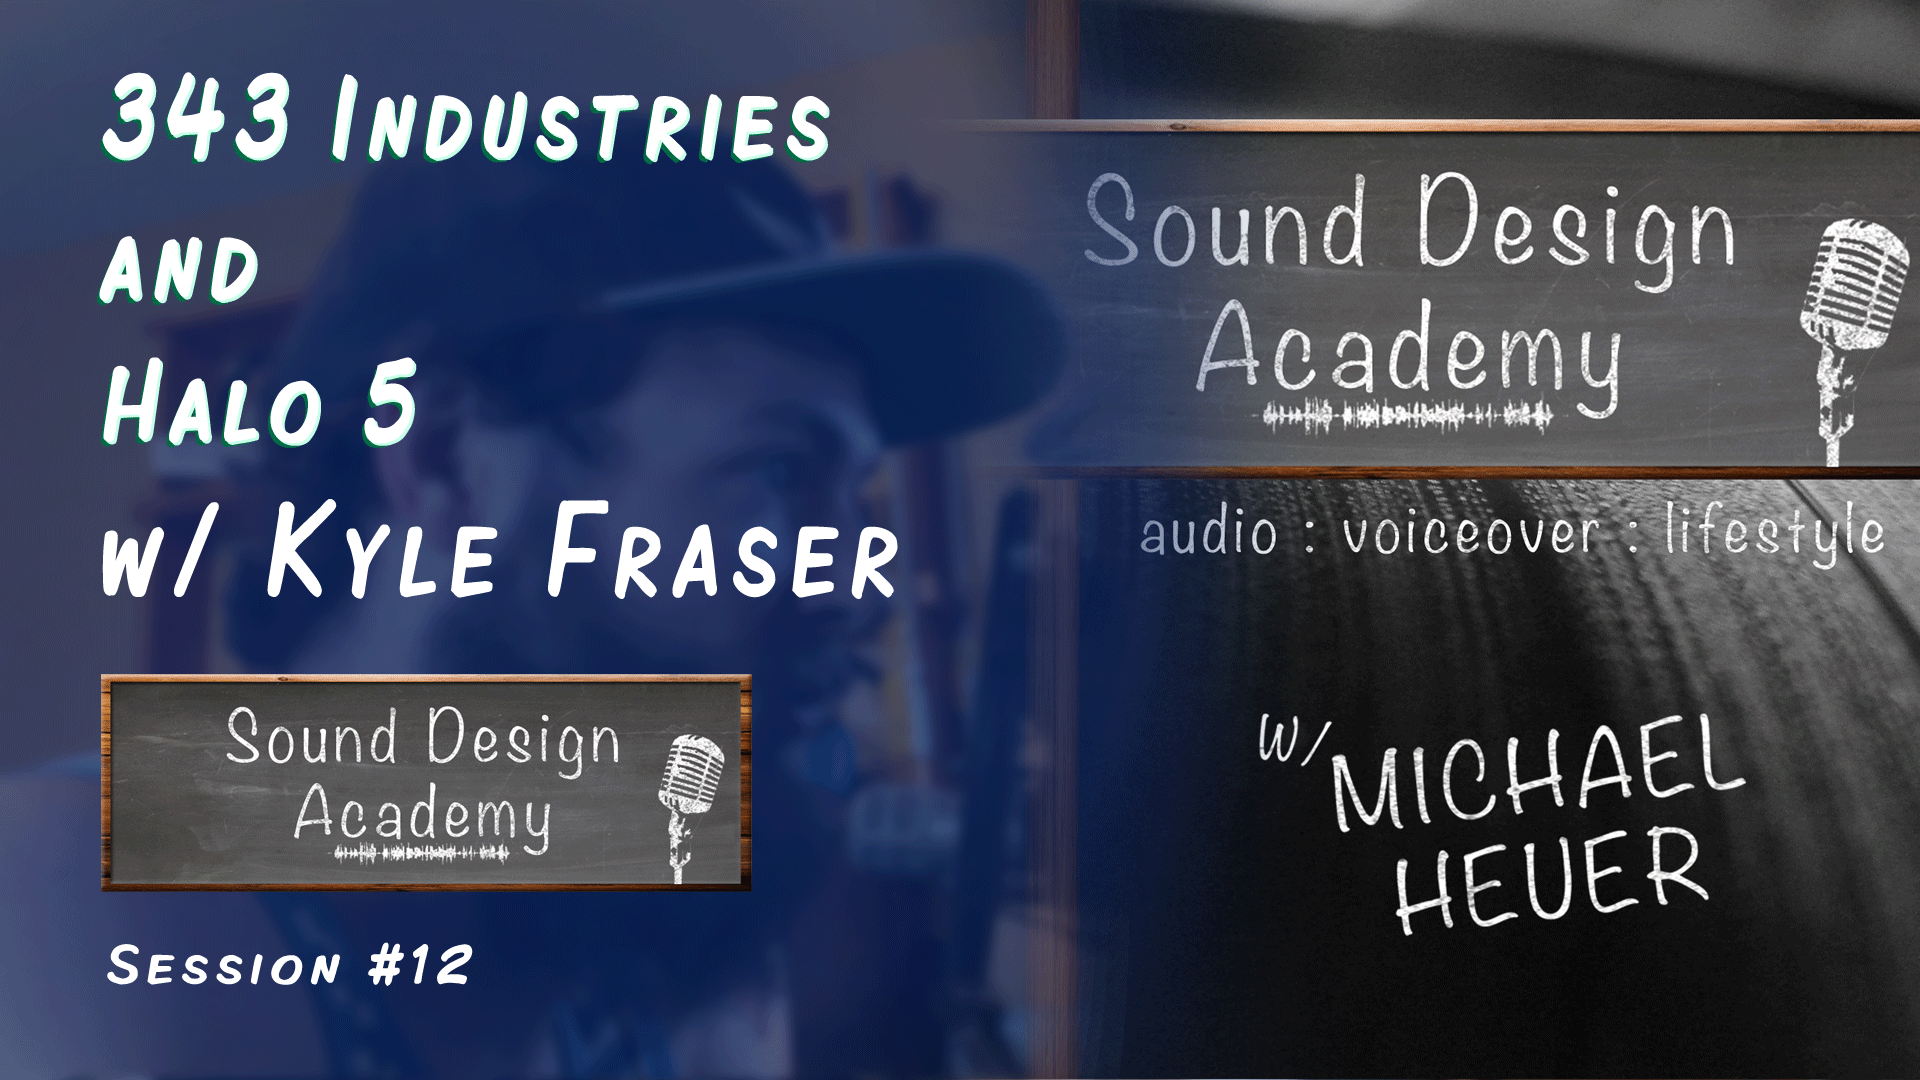 Sound Design Academy interview with sound design Kyle Fraser of 343 Industries